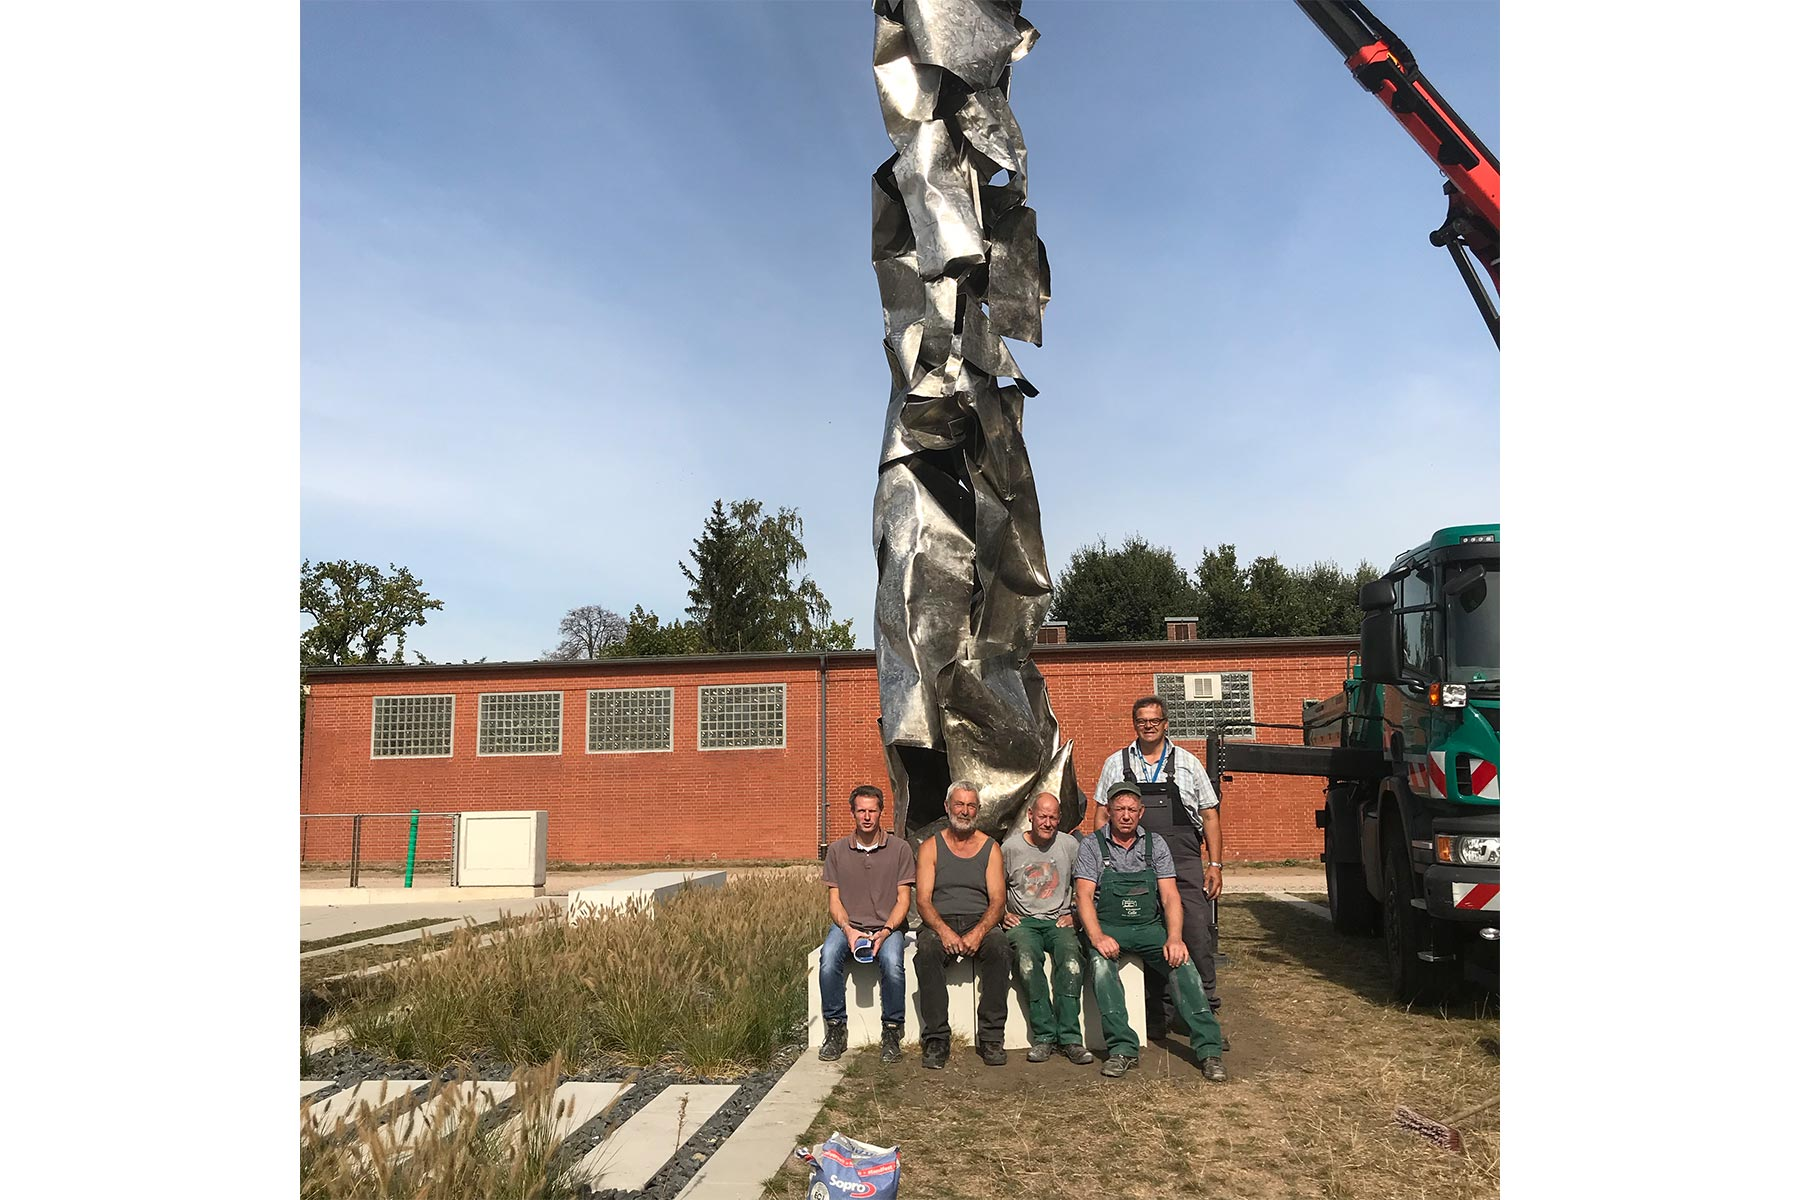 The men of the Grünflächenamt in Celle who helped me tremendously with the transport and installation of the sculpture